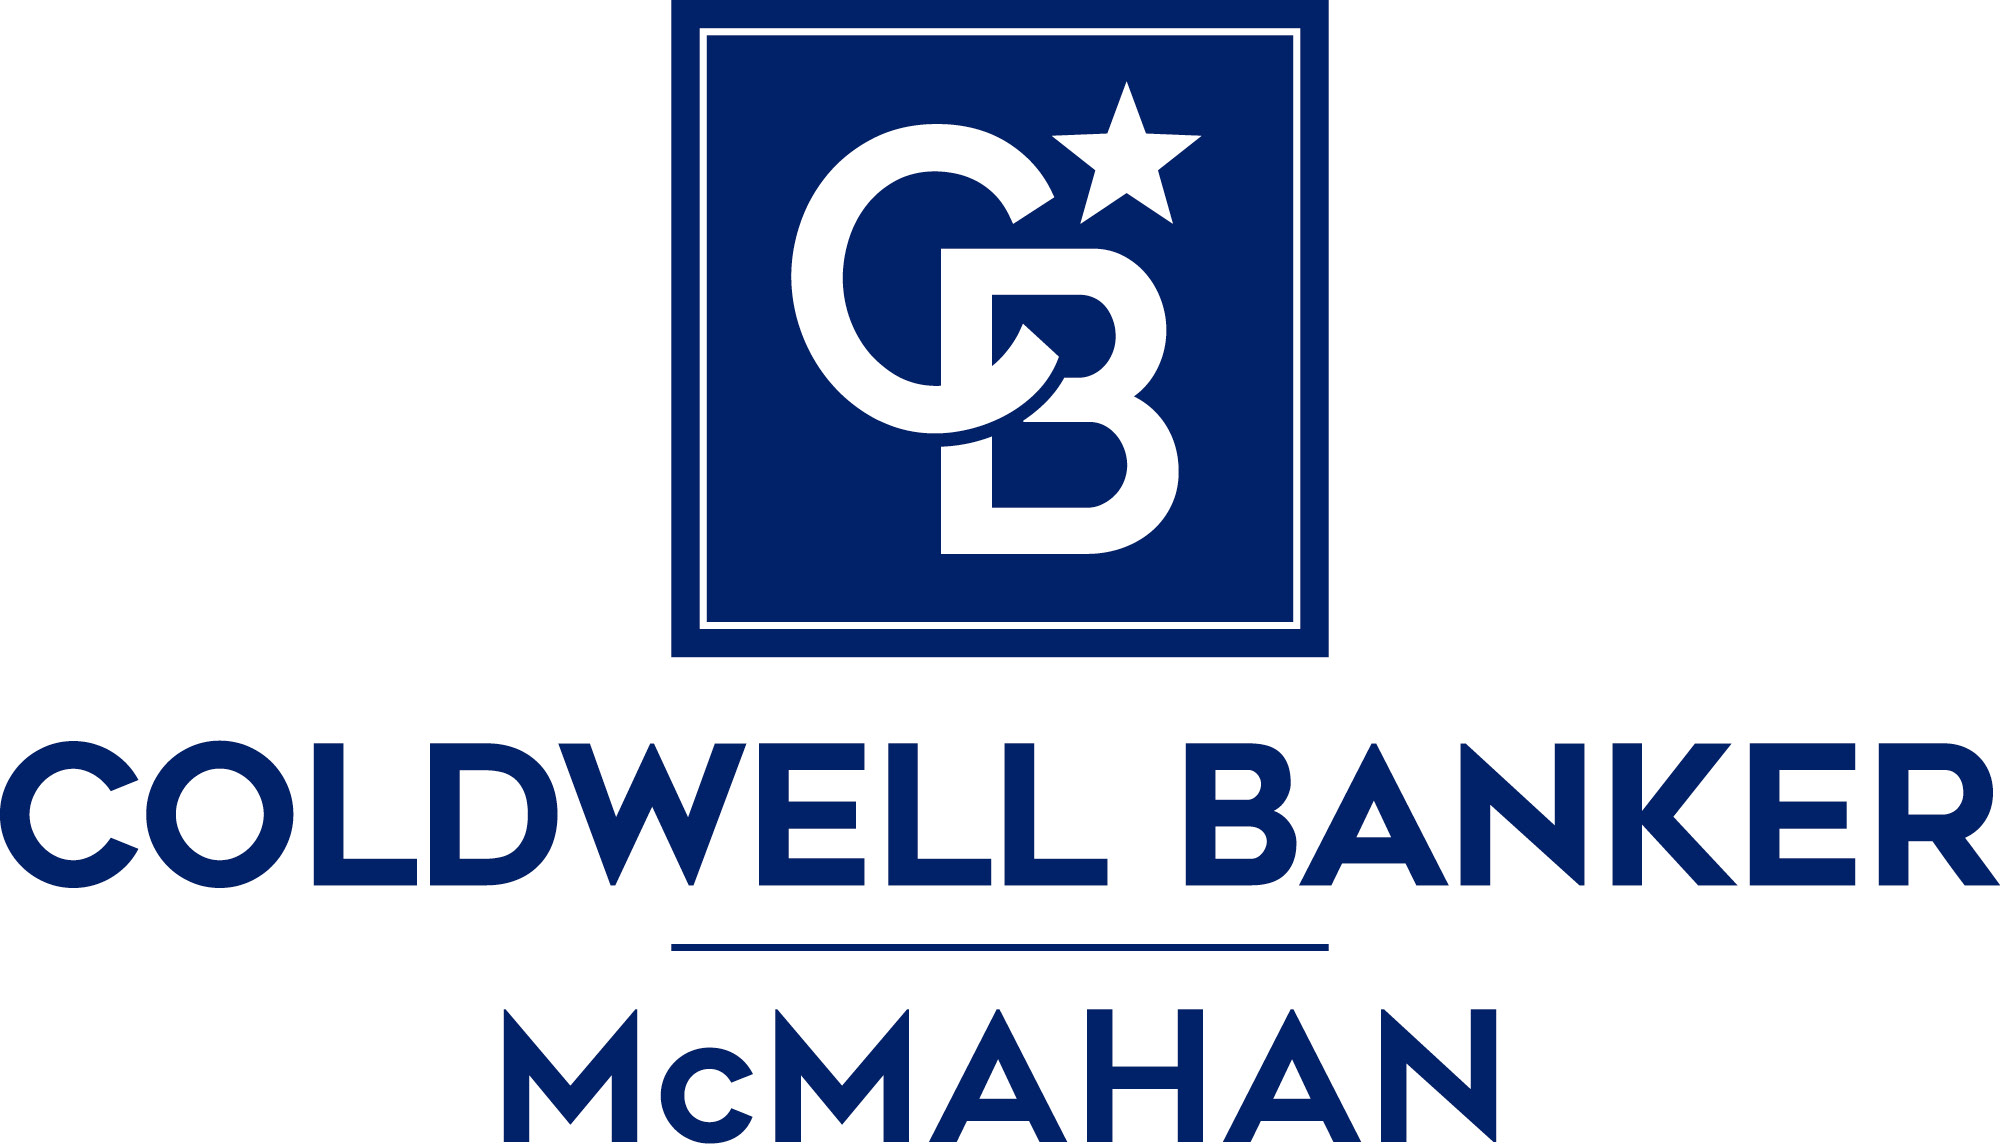 Aaron Smither - Coldwell Banker McMahan Logo